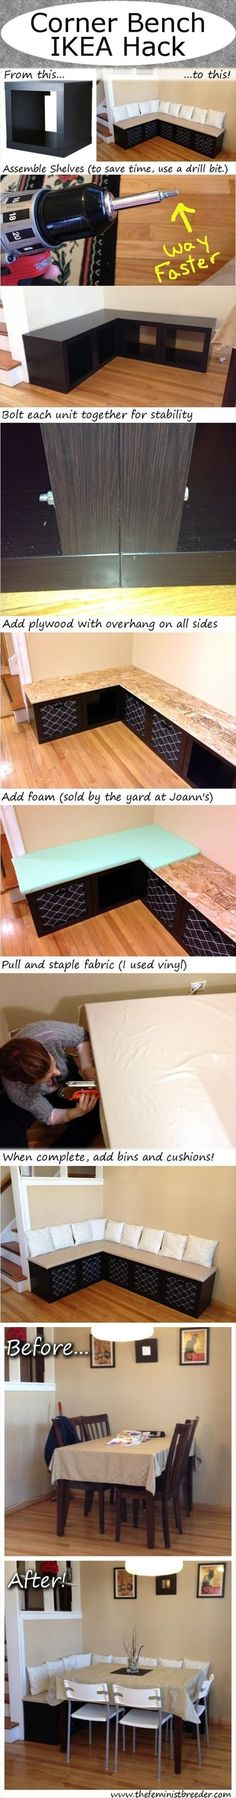 Gotta do this for my dining room so I can make some space looks easy enough...